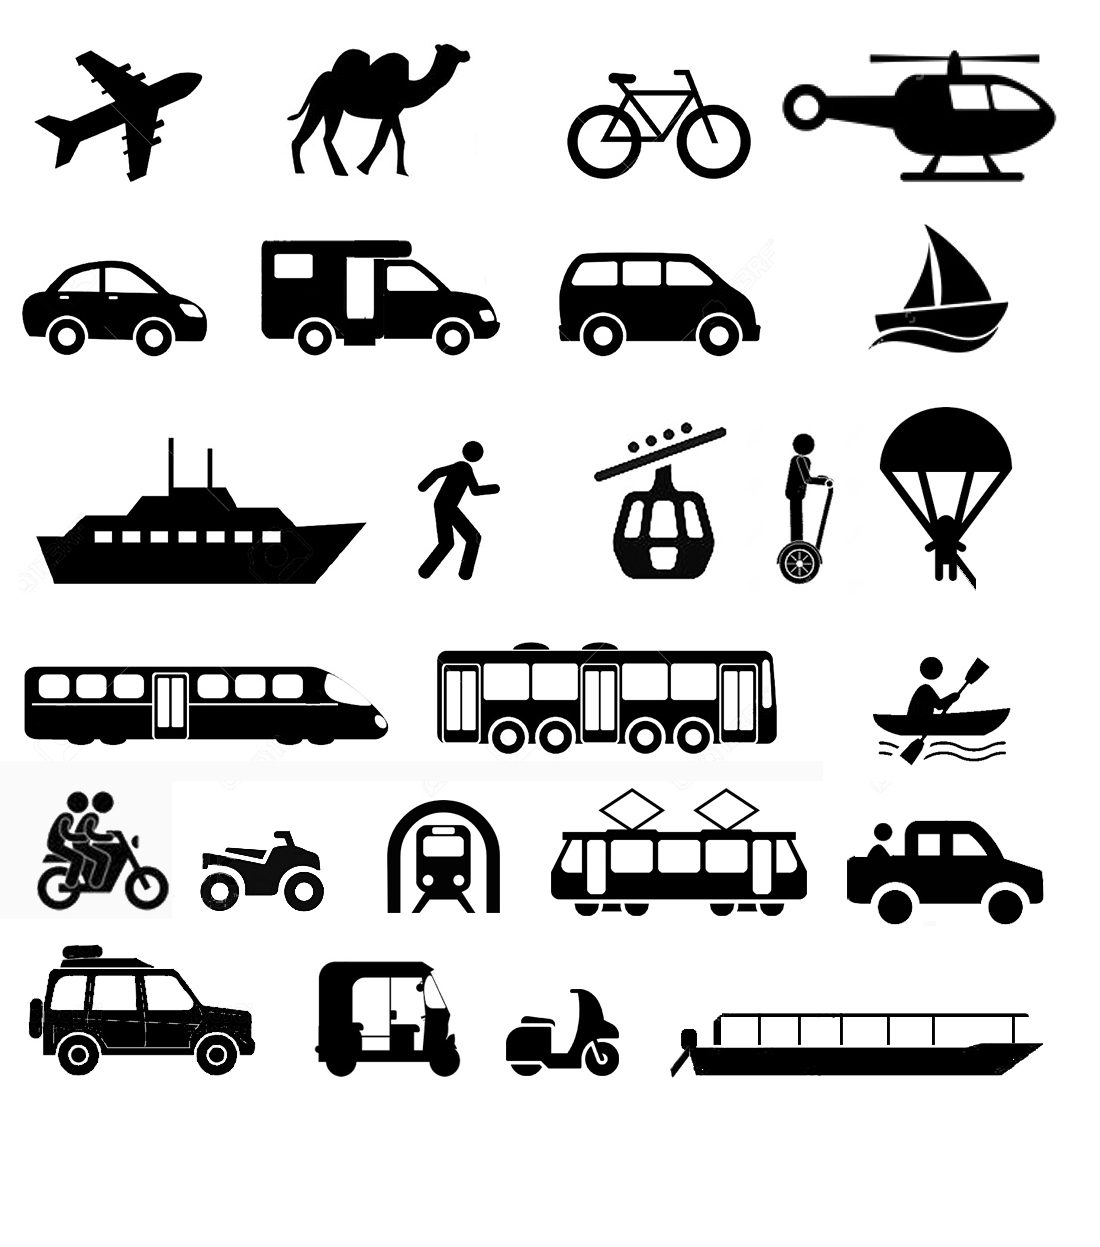 Les types de transport